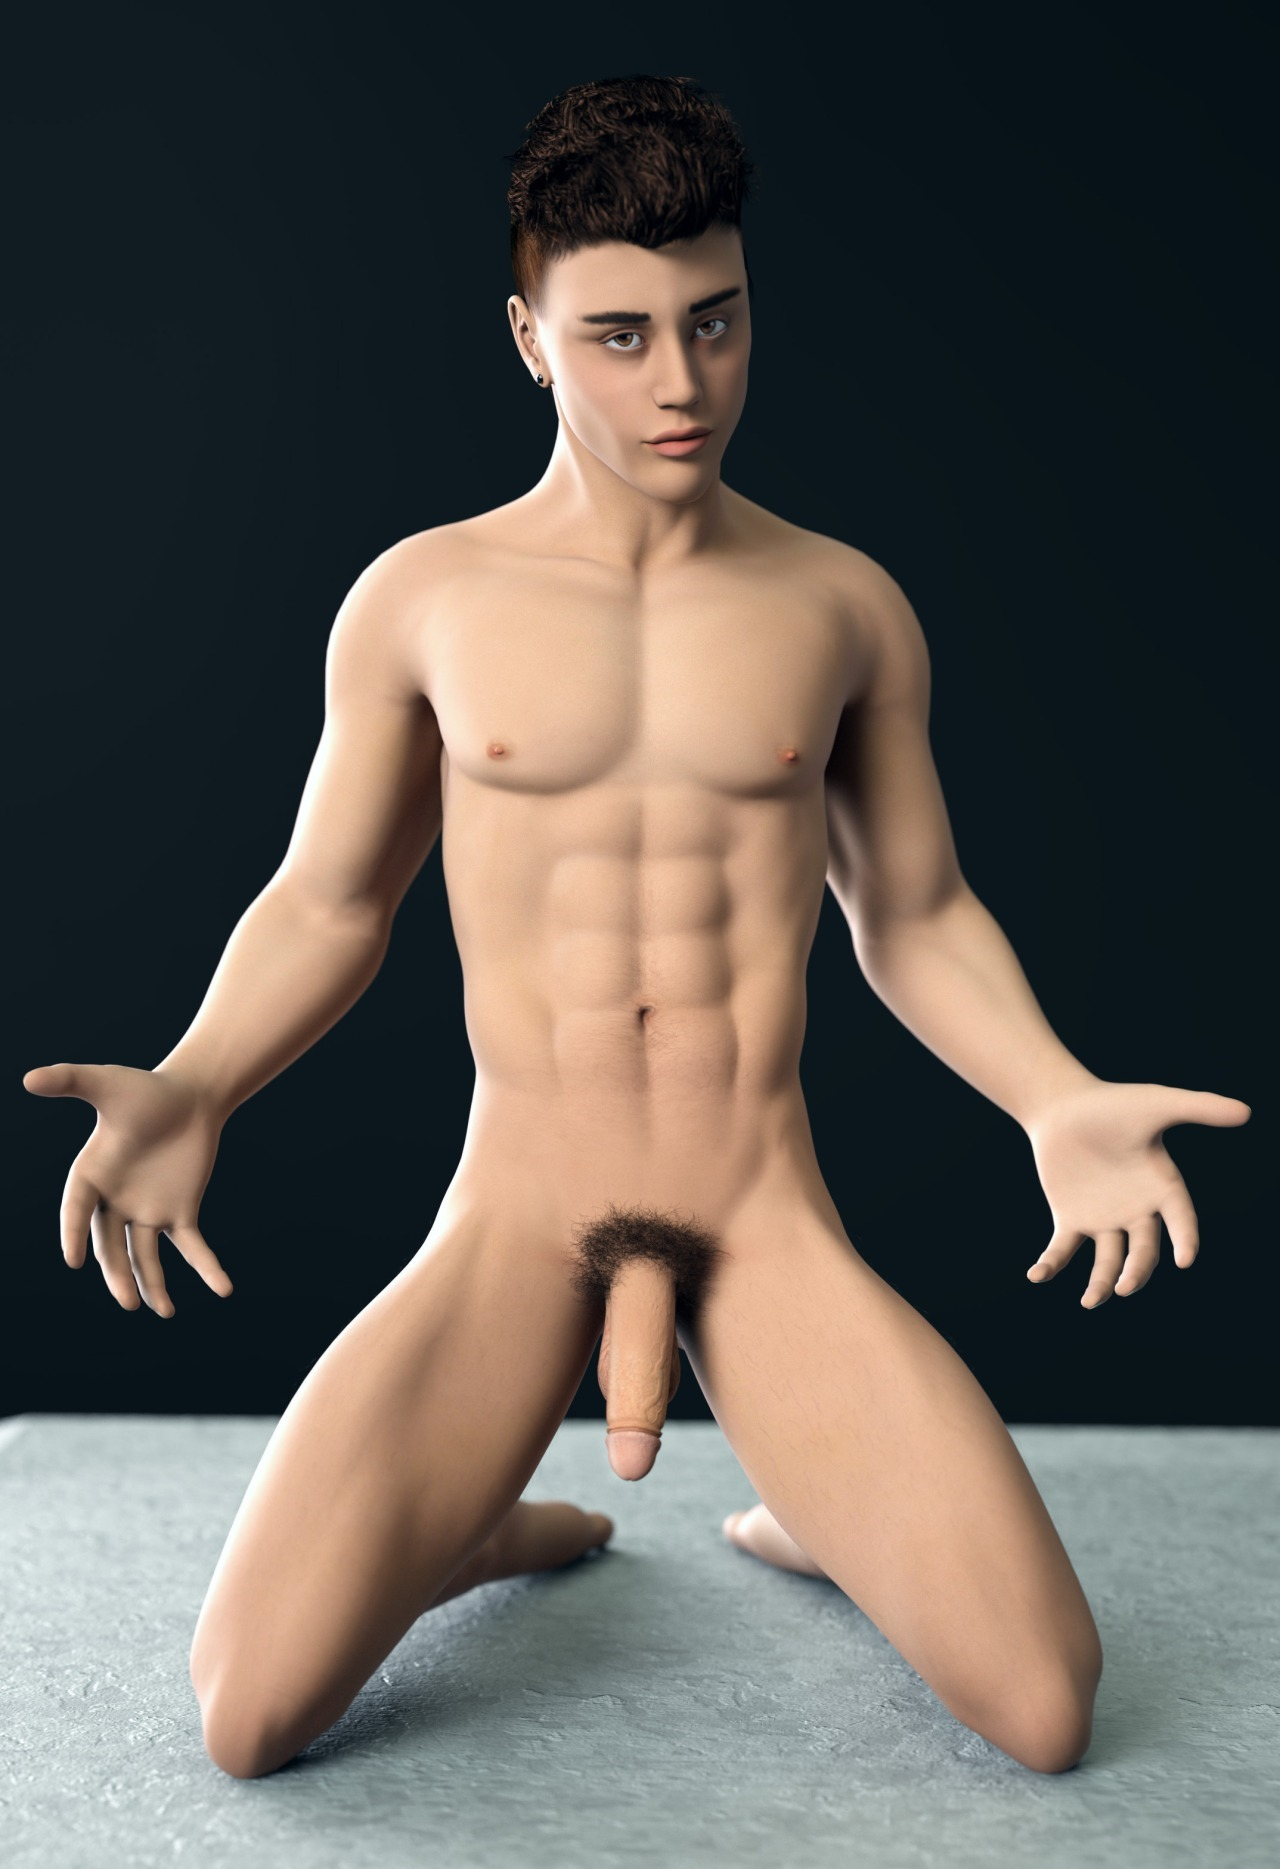 3d model boy gay sex they039re highly cliquey 7